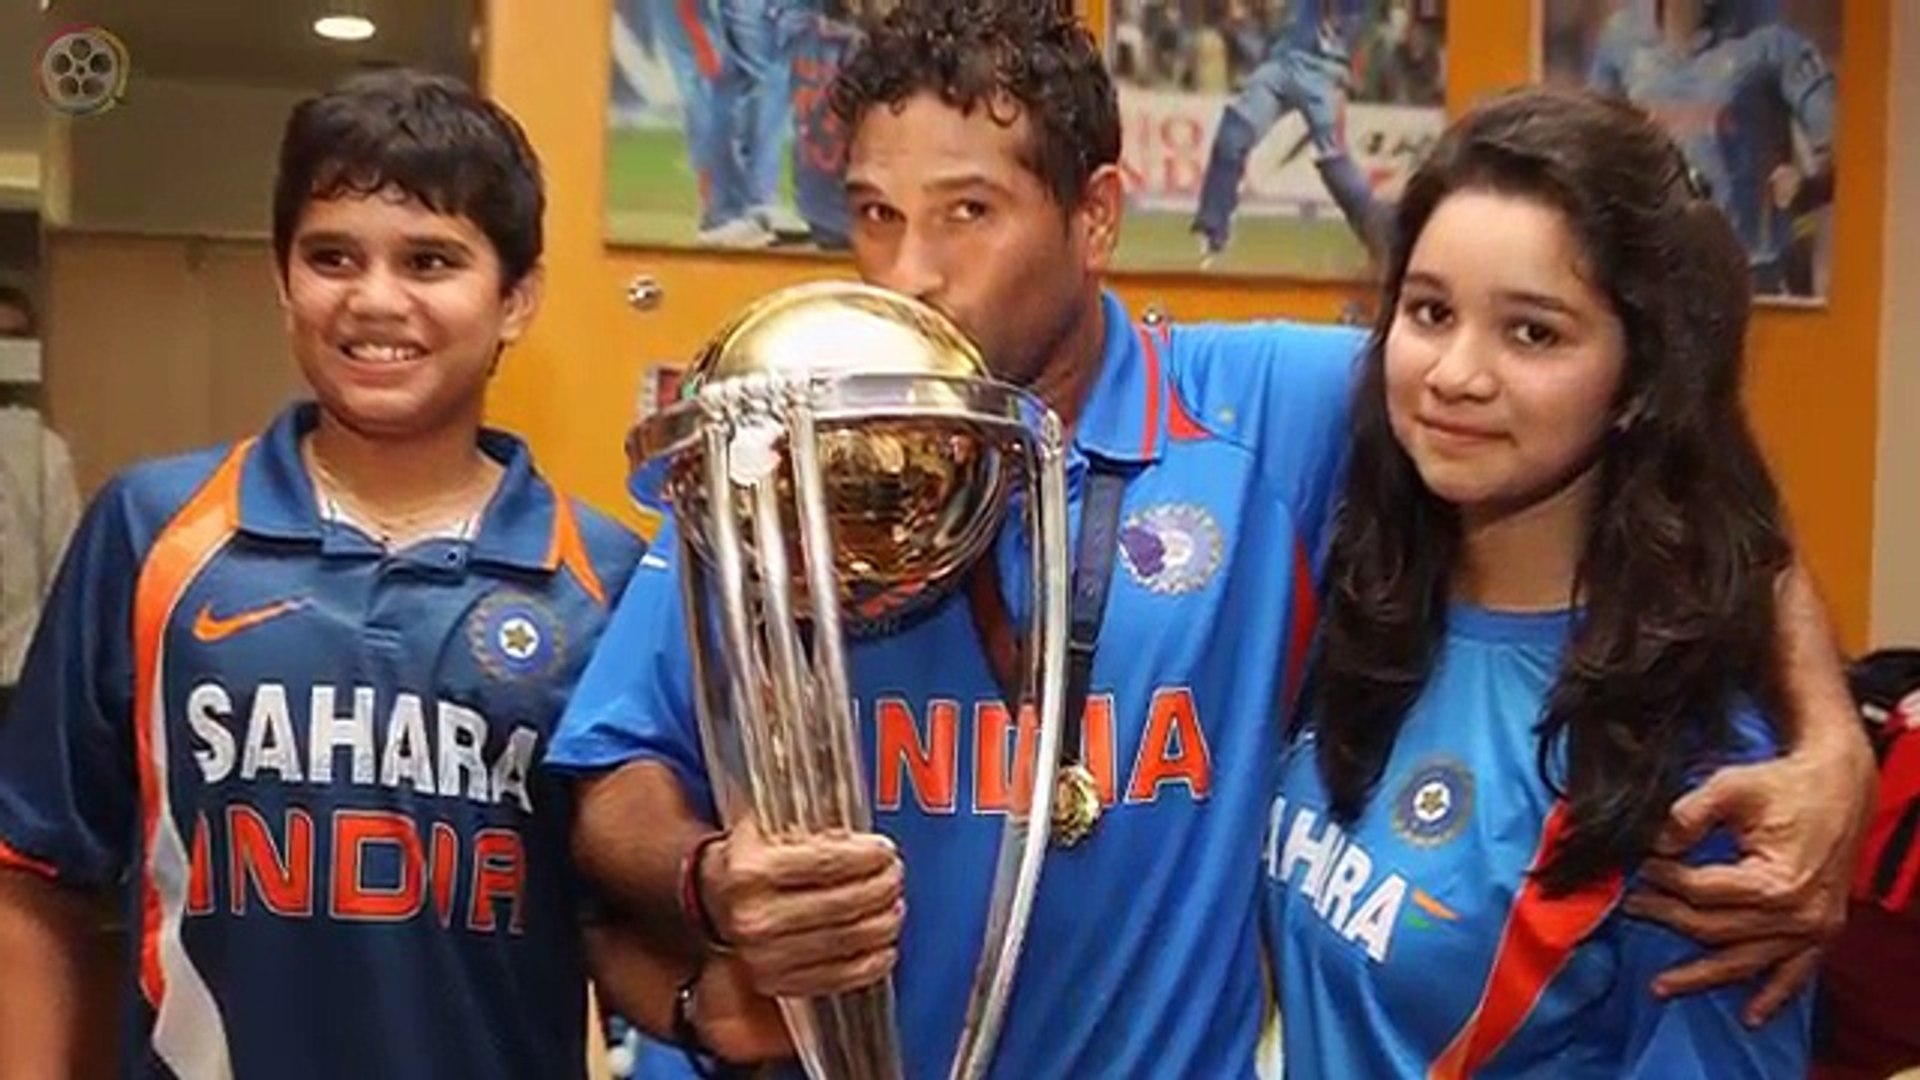 44. Sachin Tendulkar Rare Pic With His Son And Daughter After Winning World Cup In 2011